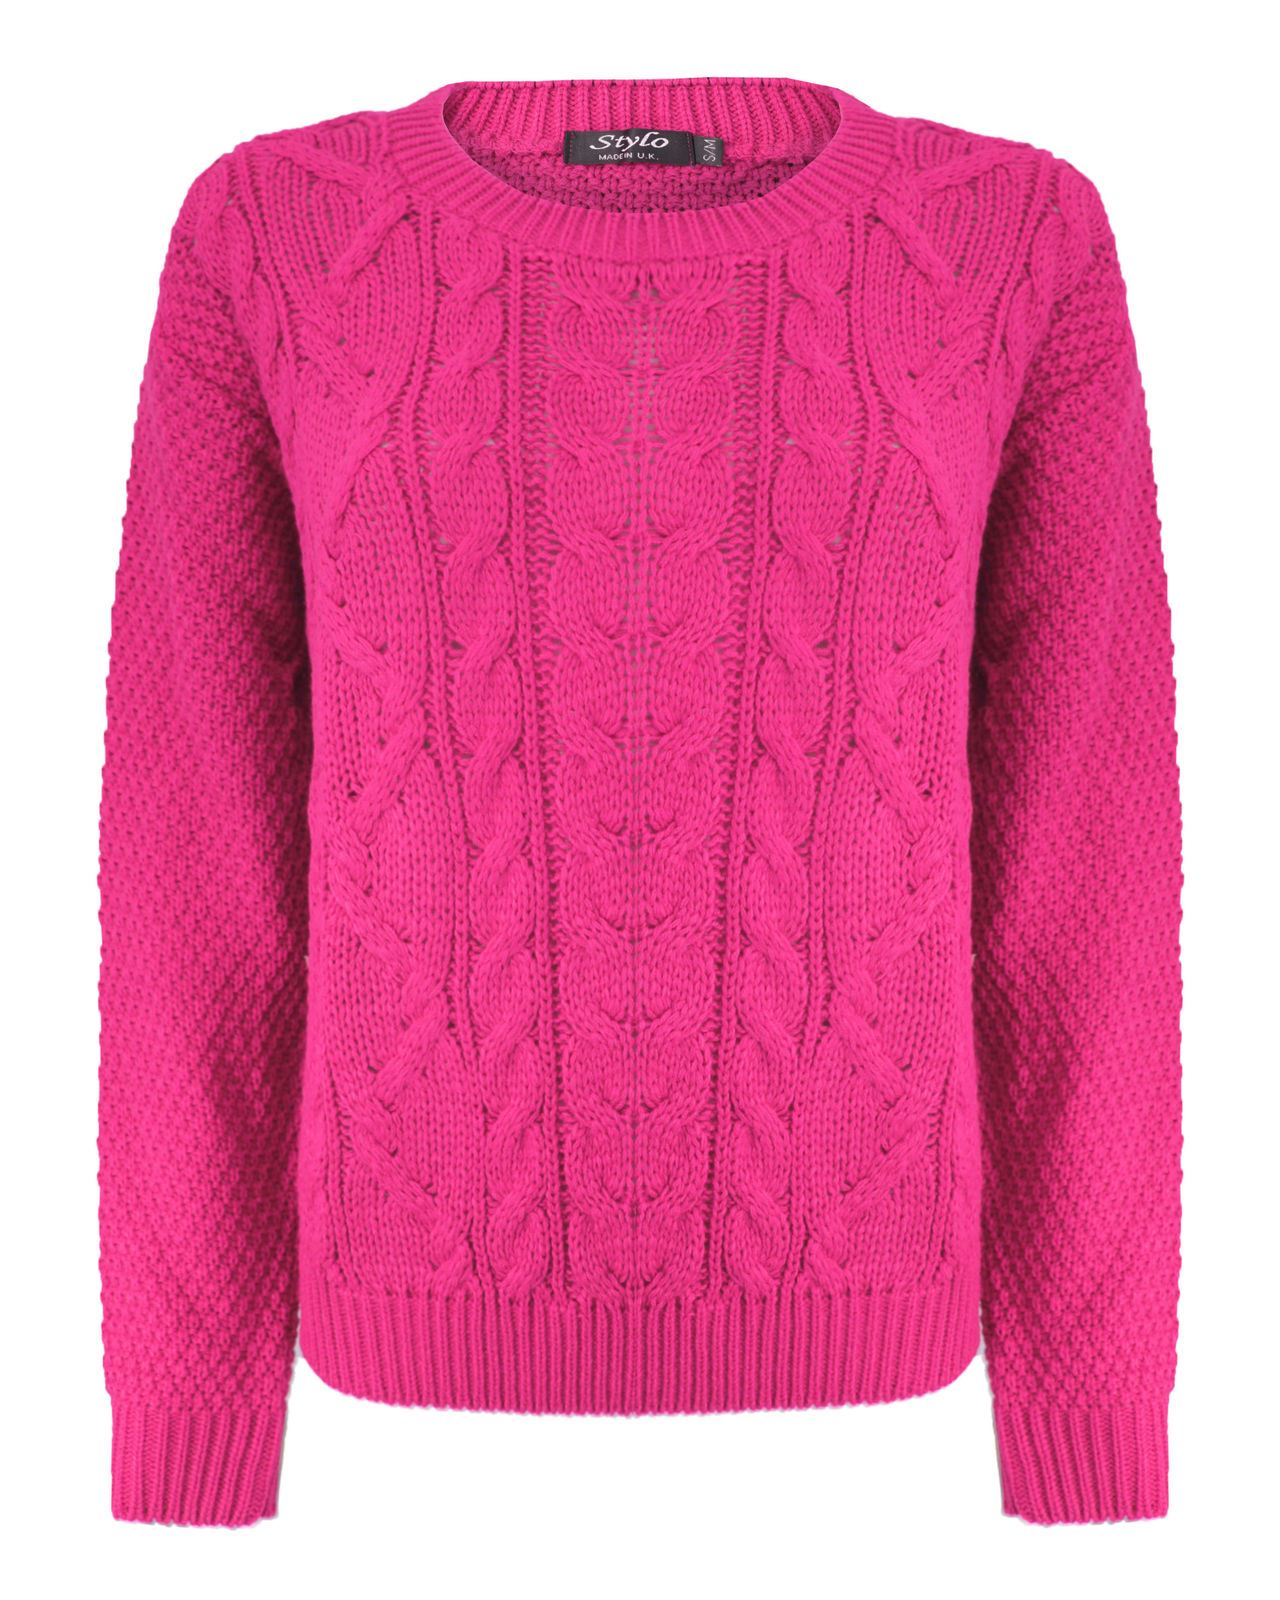 New Womens Ladies Crew Neck Cable Knitted Sweater Long Sleeve Pullover Jumper Knitwear Tops UK 8-18